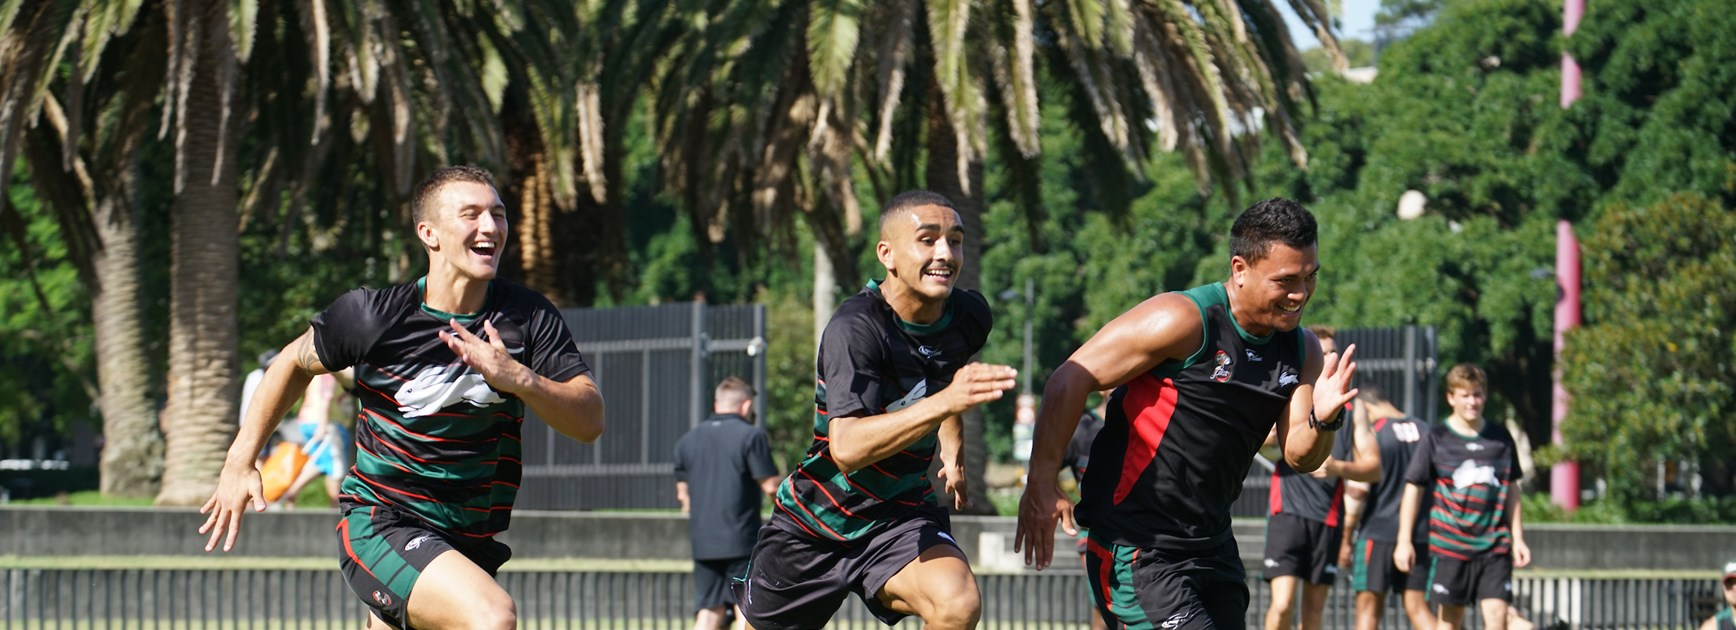 Junior Rabbitohs to play final trial ahead of 2019 season